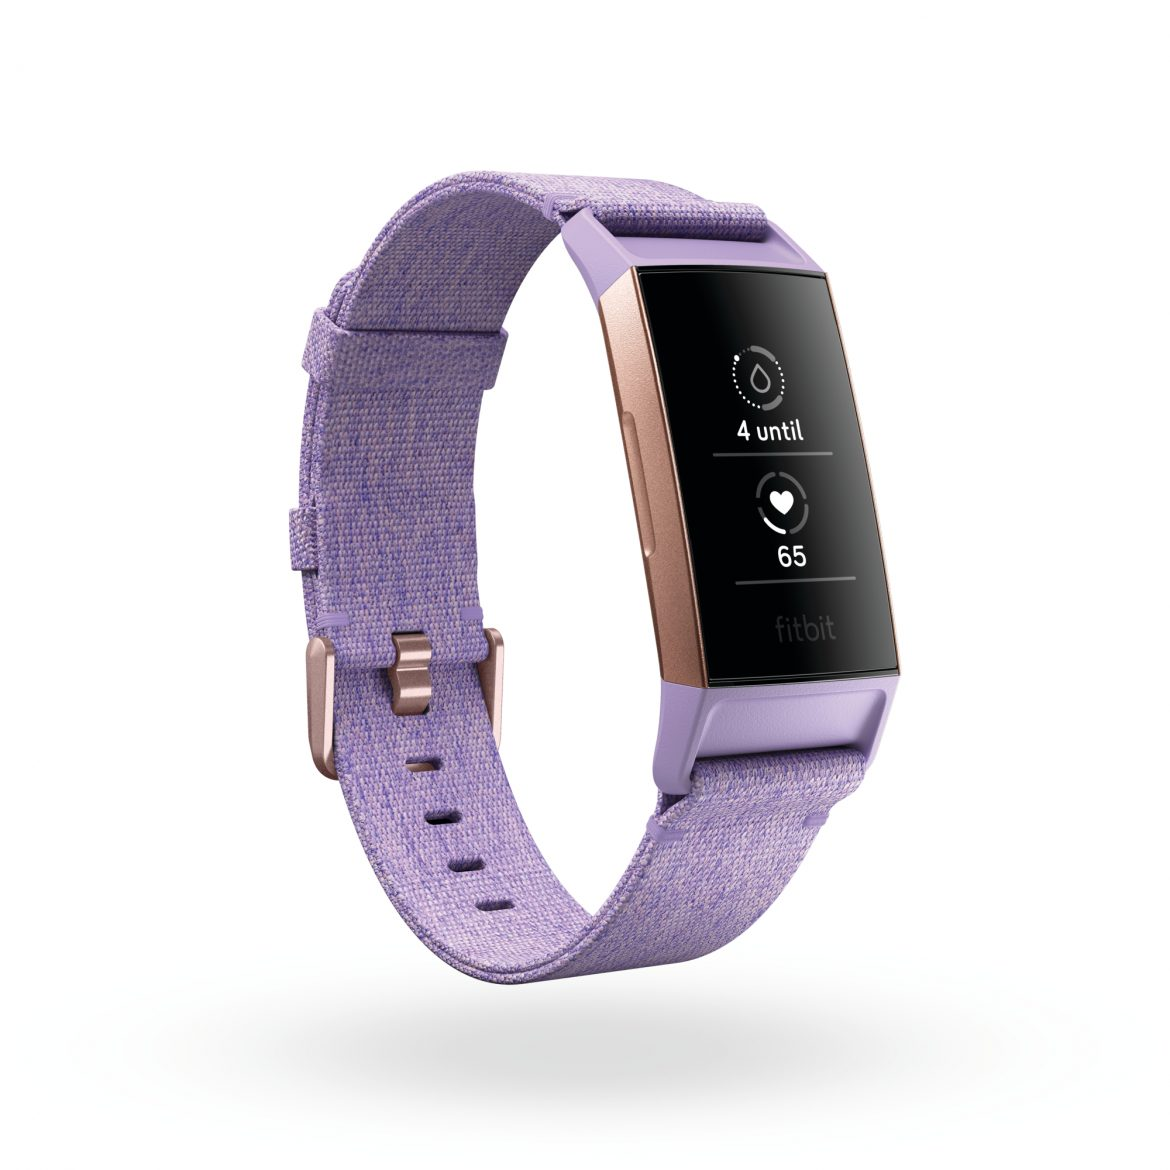 Fitbit_Charge_3_3QTR_SE_Lavender_Rose_Gold_Period_Tracking_In_Today_Shadow-1170x1170